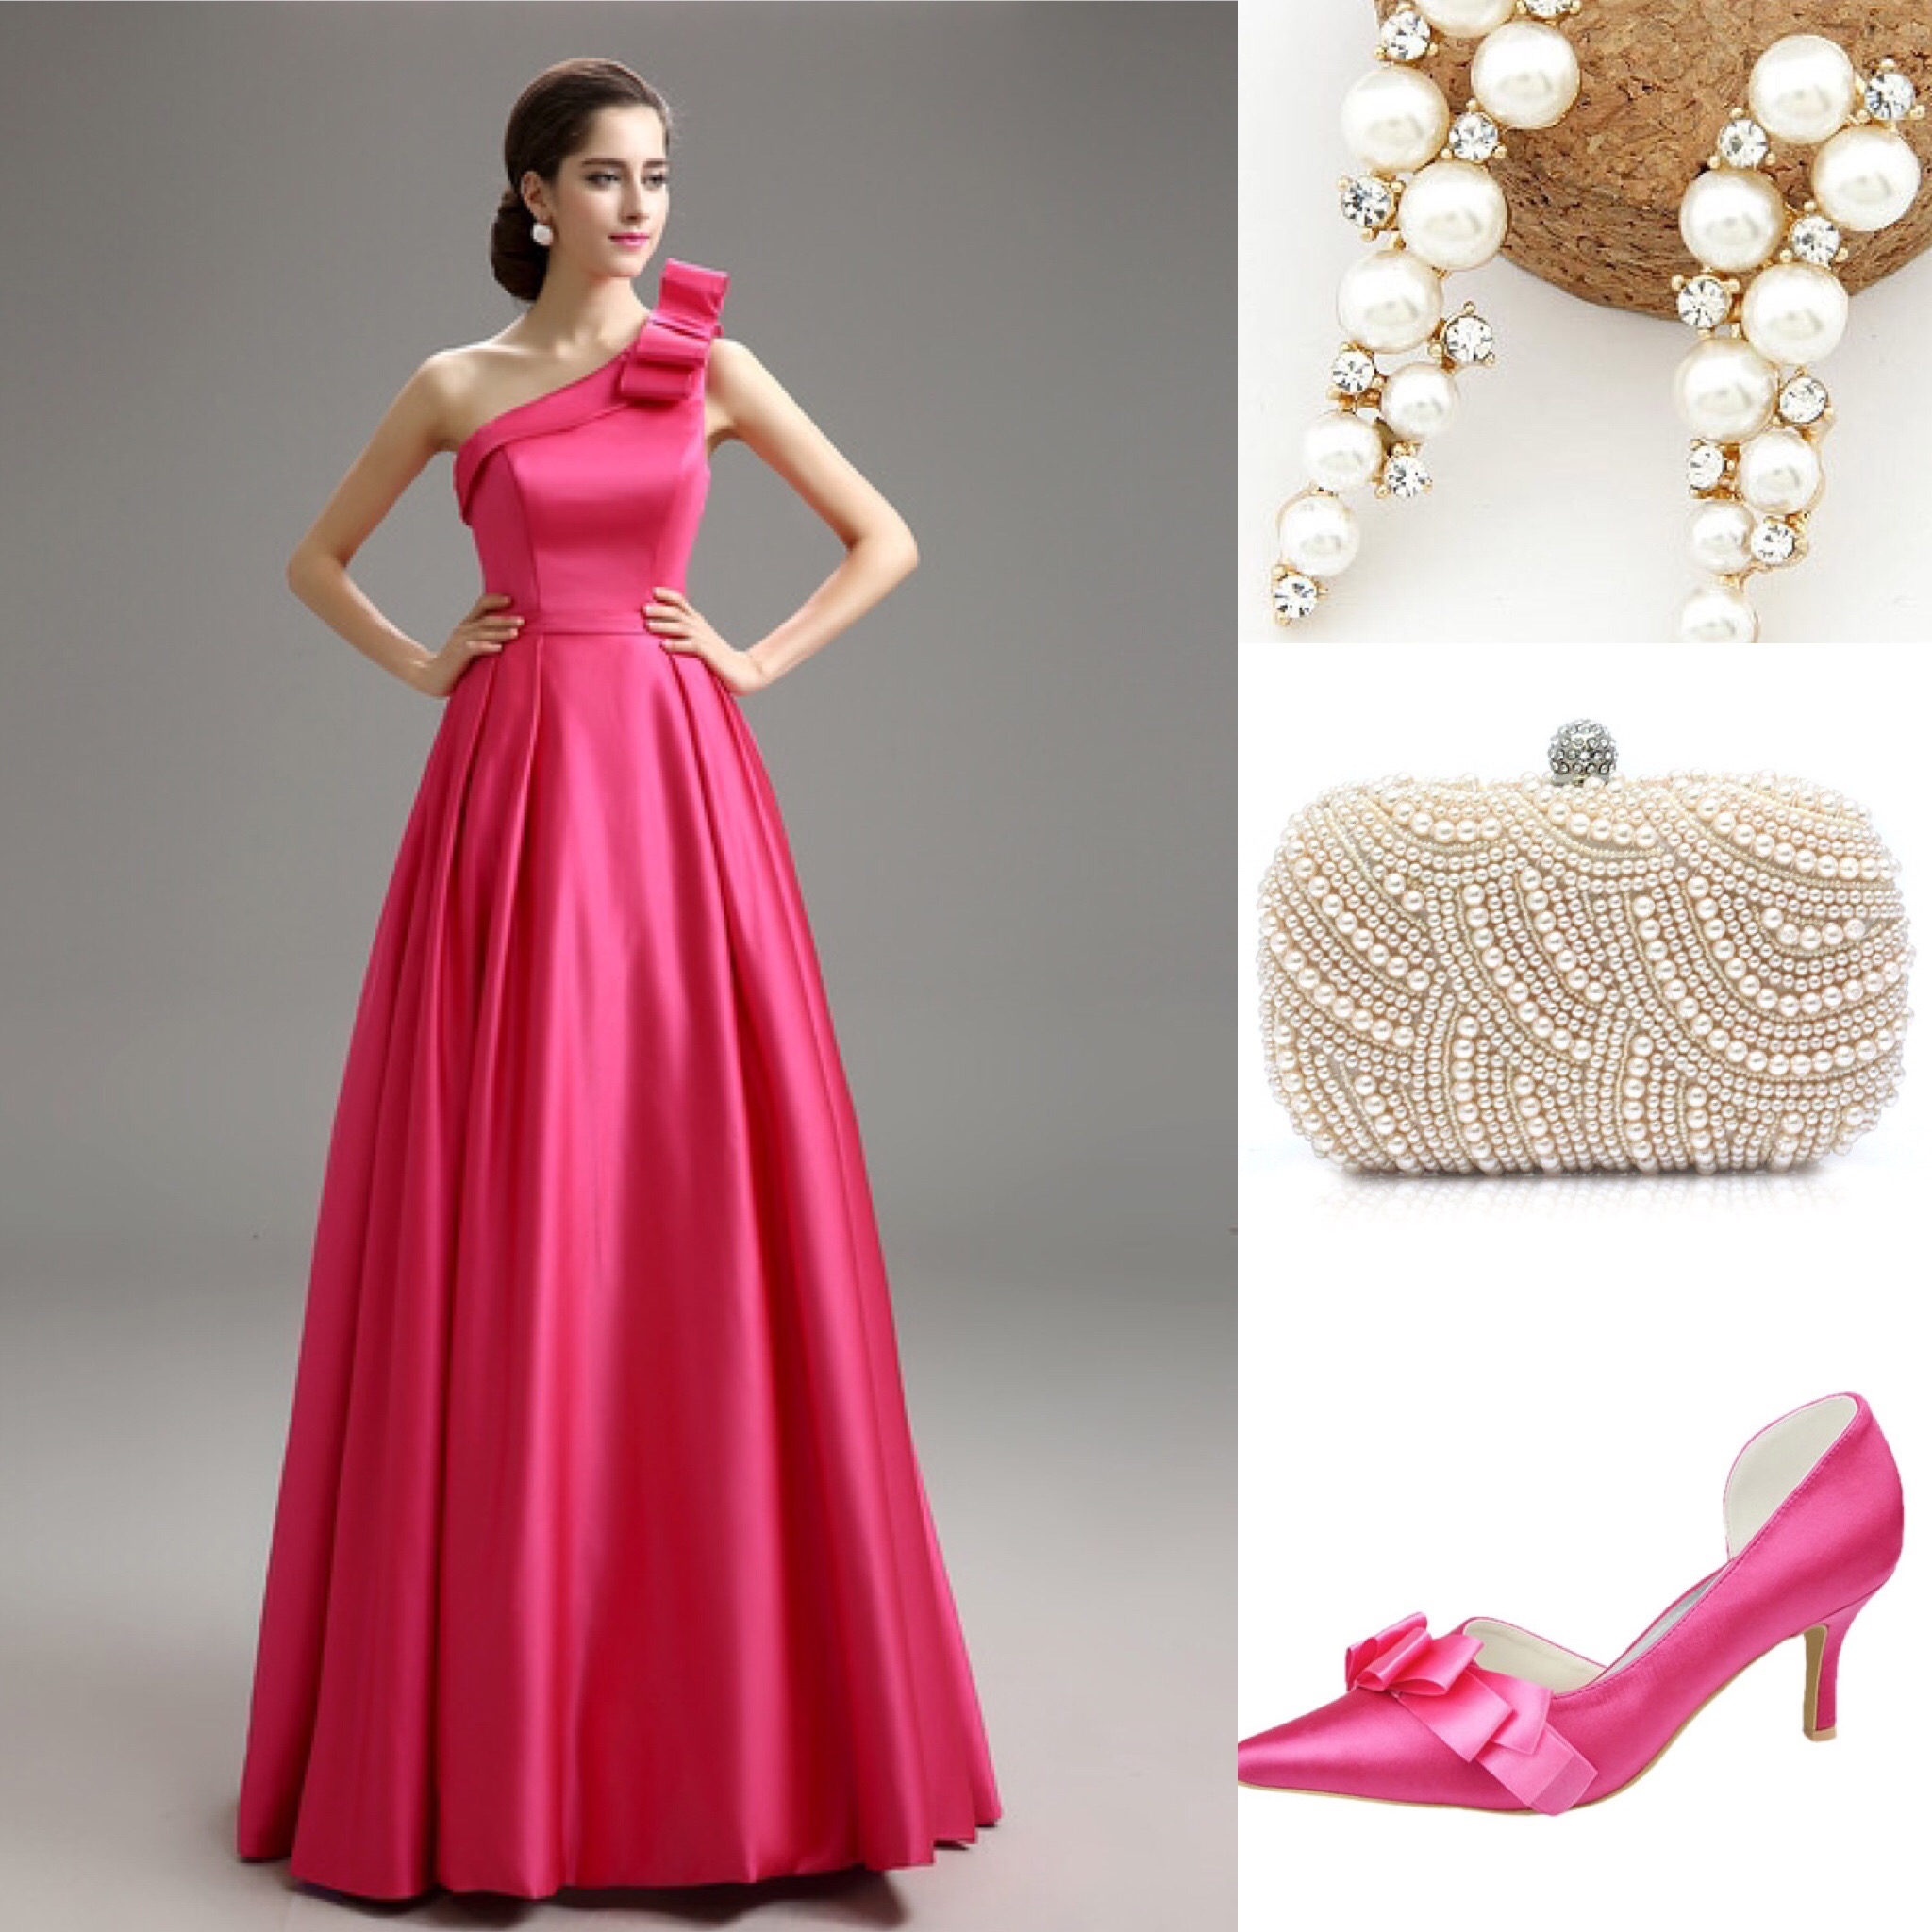 Cheap But Good Quality Prom Dress You Want Milanoo Blog